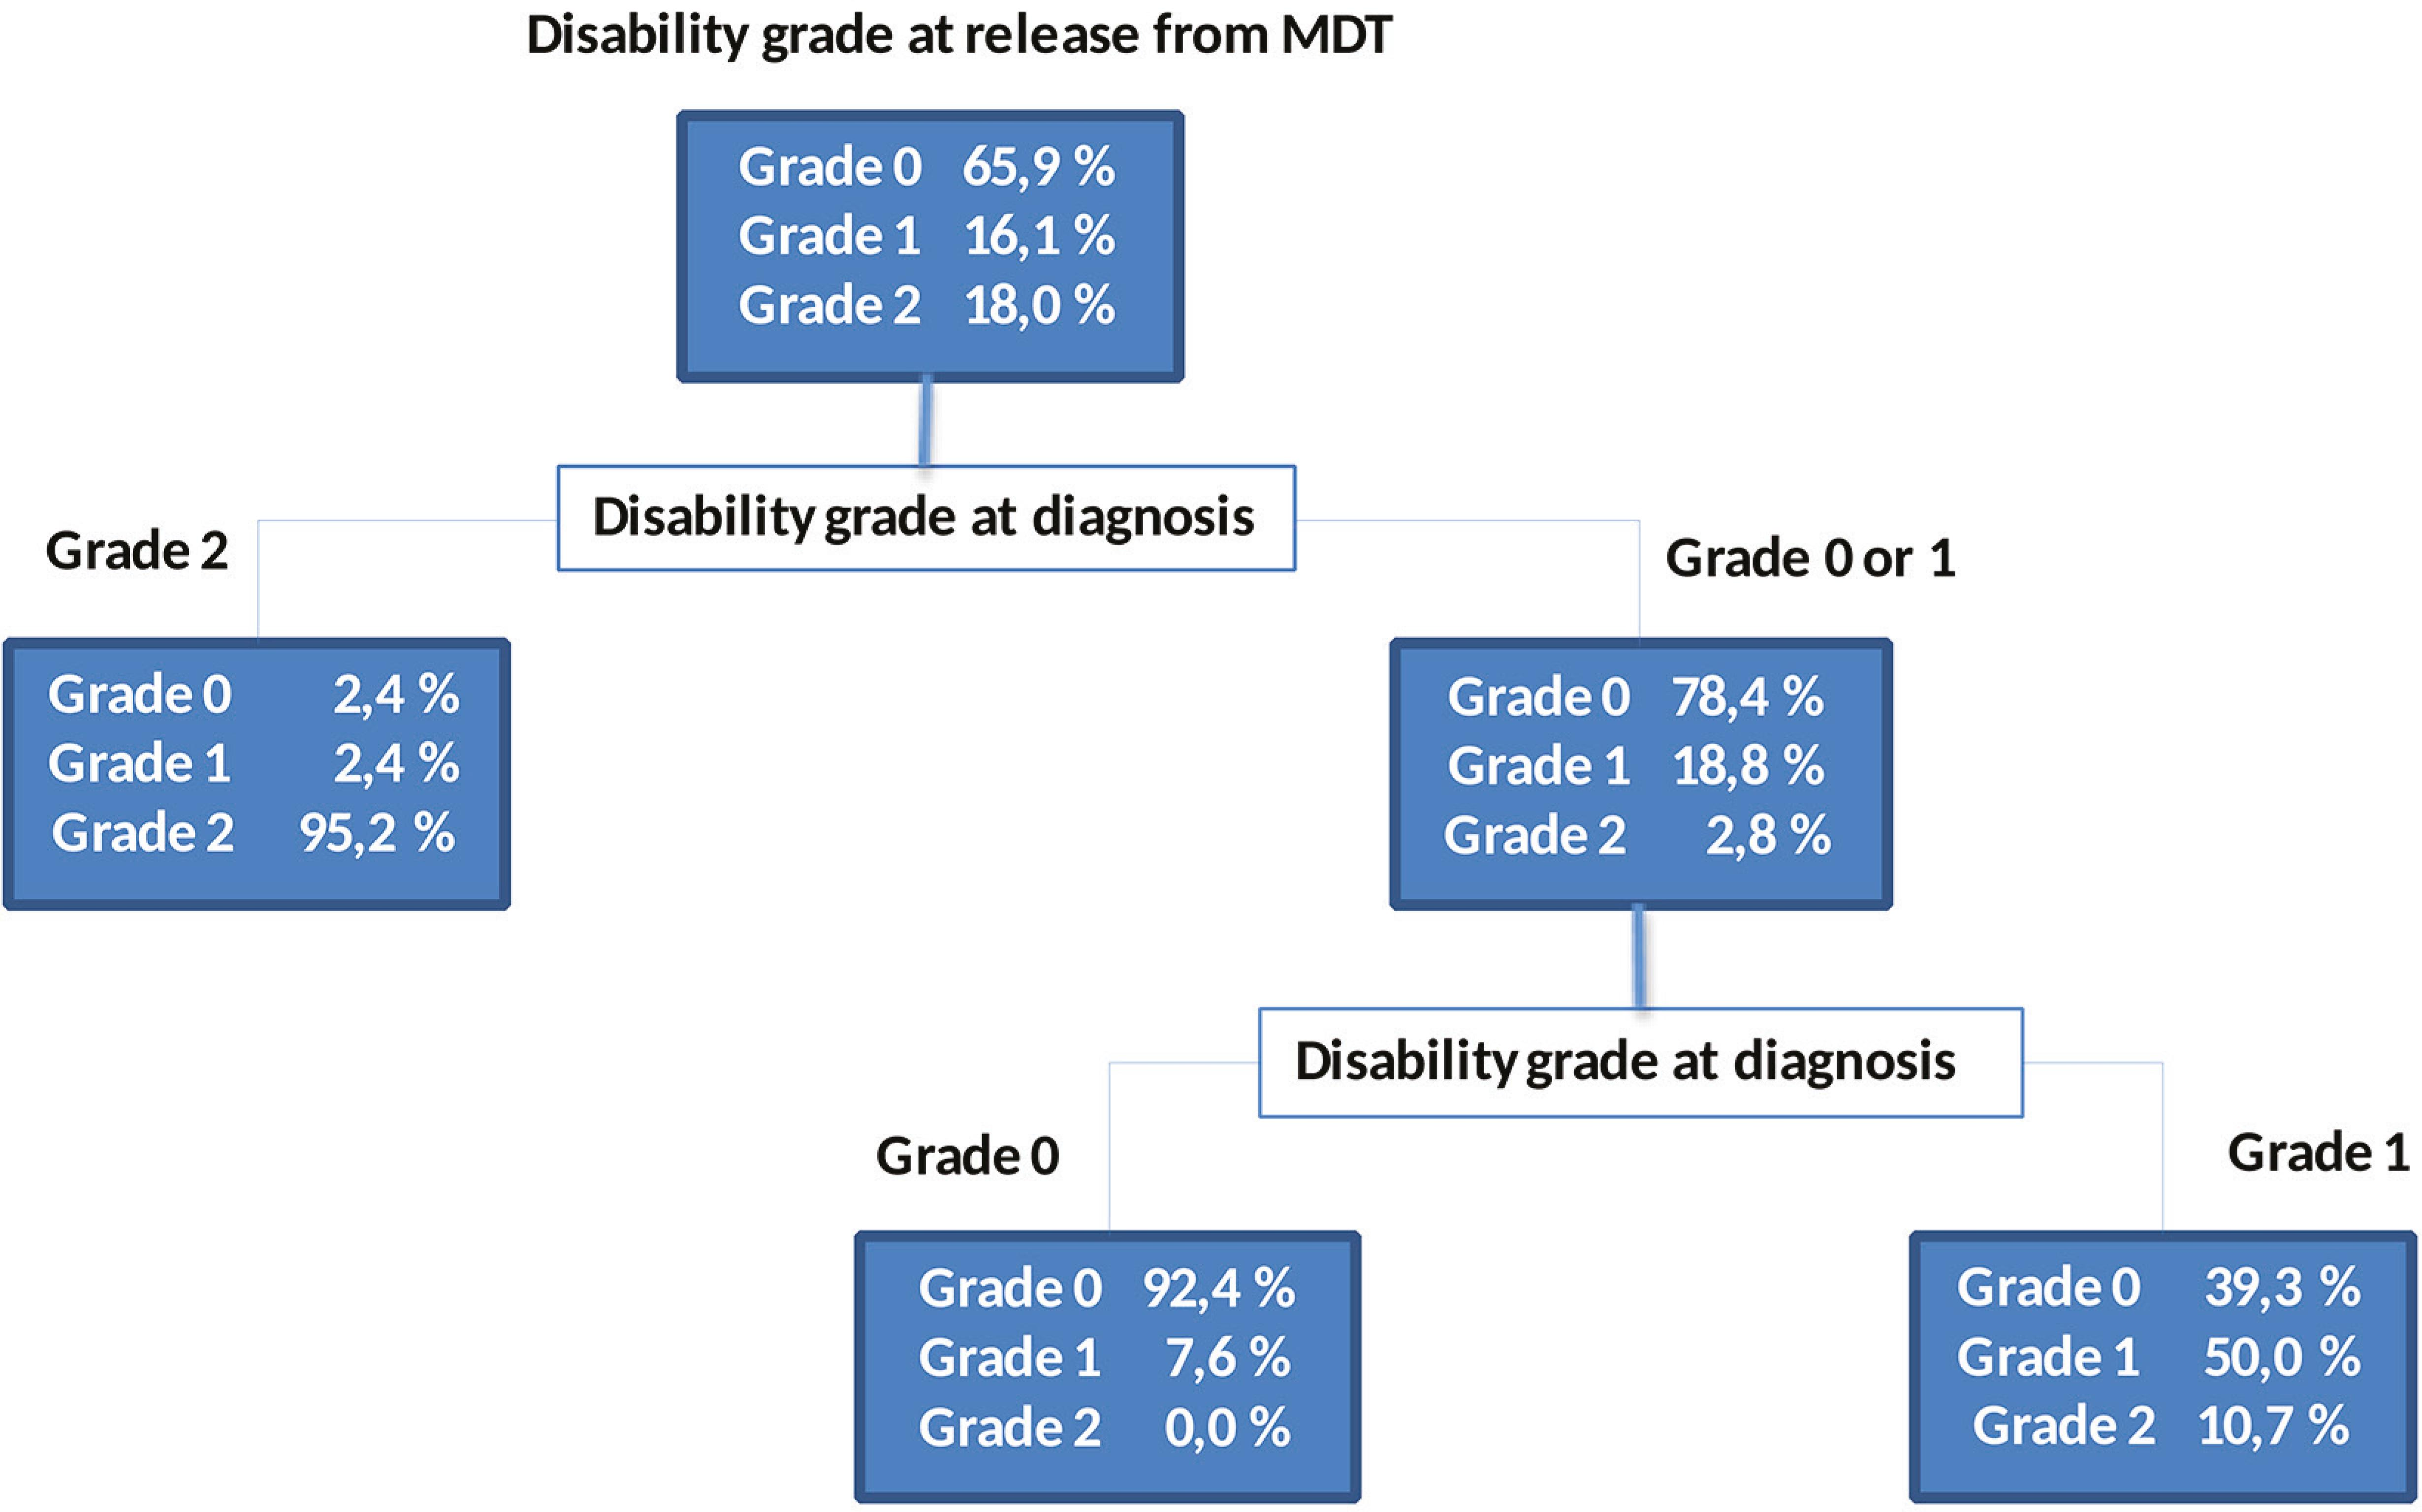 Classification and regression tree that shows the progression of the disability grade from diagnosis to the release from treatmentin new cases of leprosy.